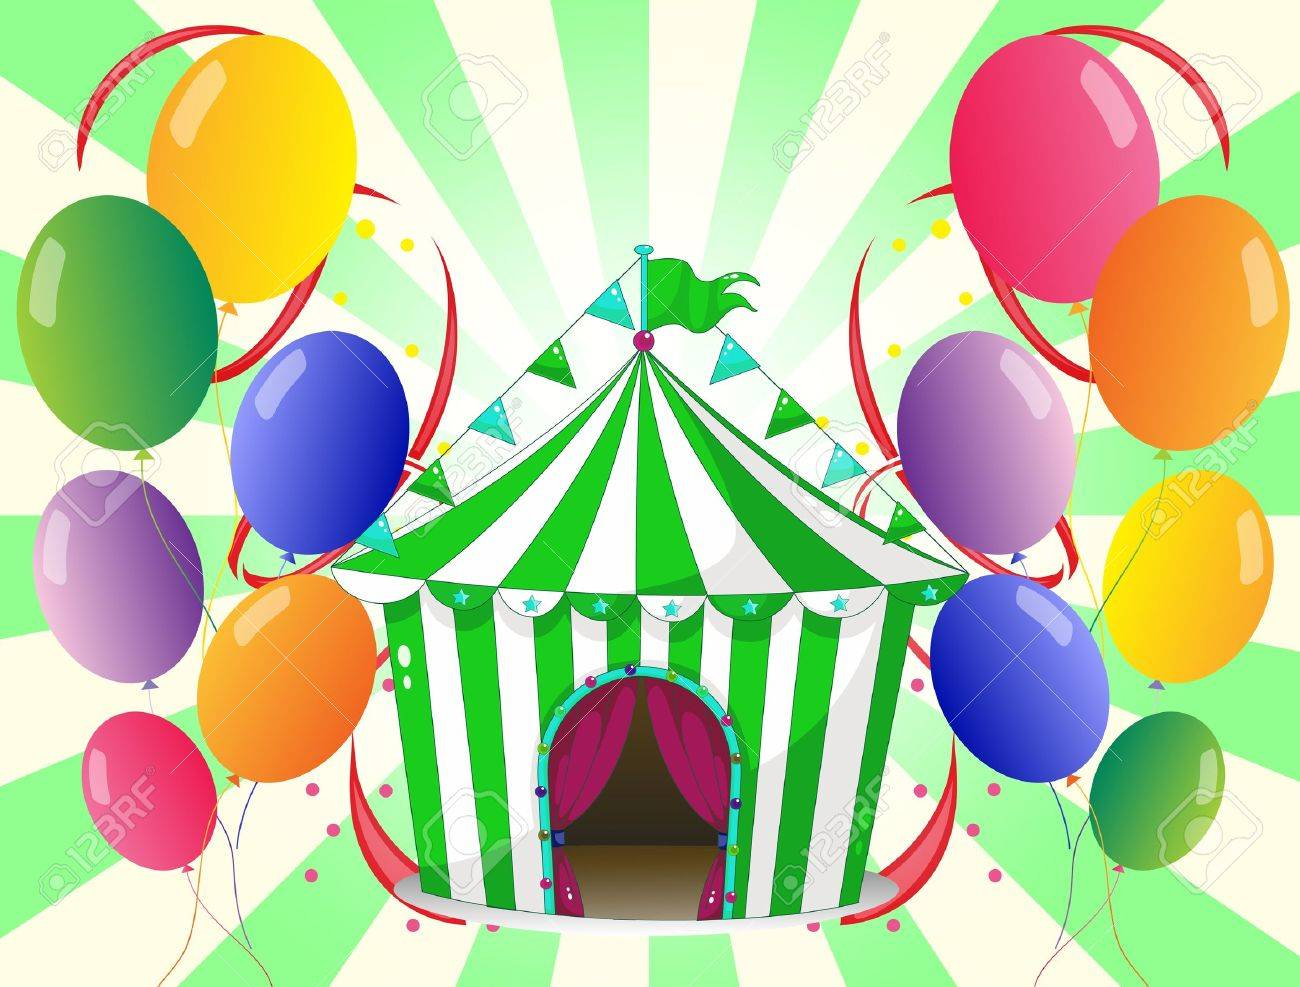 Illustration of a green circus tent at the center of the colorful balloons on a white background Stock Vector - 19301474